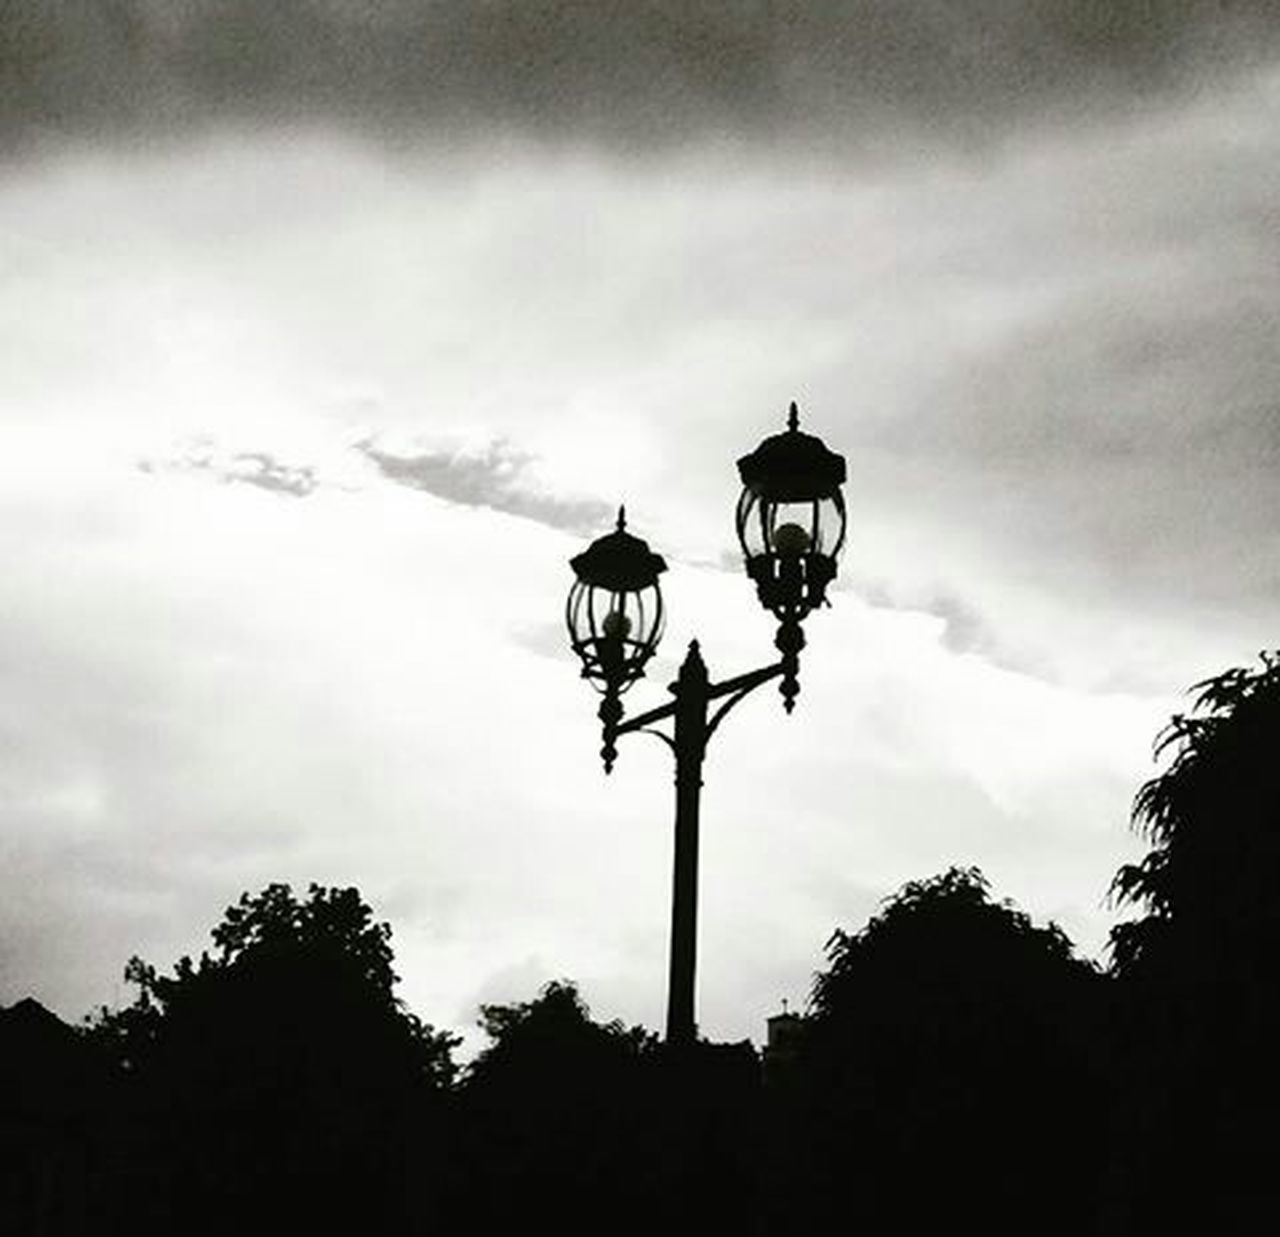 lighting equipment, tree, silhouette, street light, outdoors, low angle view, sky, no people, electricity, cloud - sky, day, nature